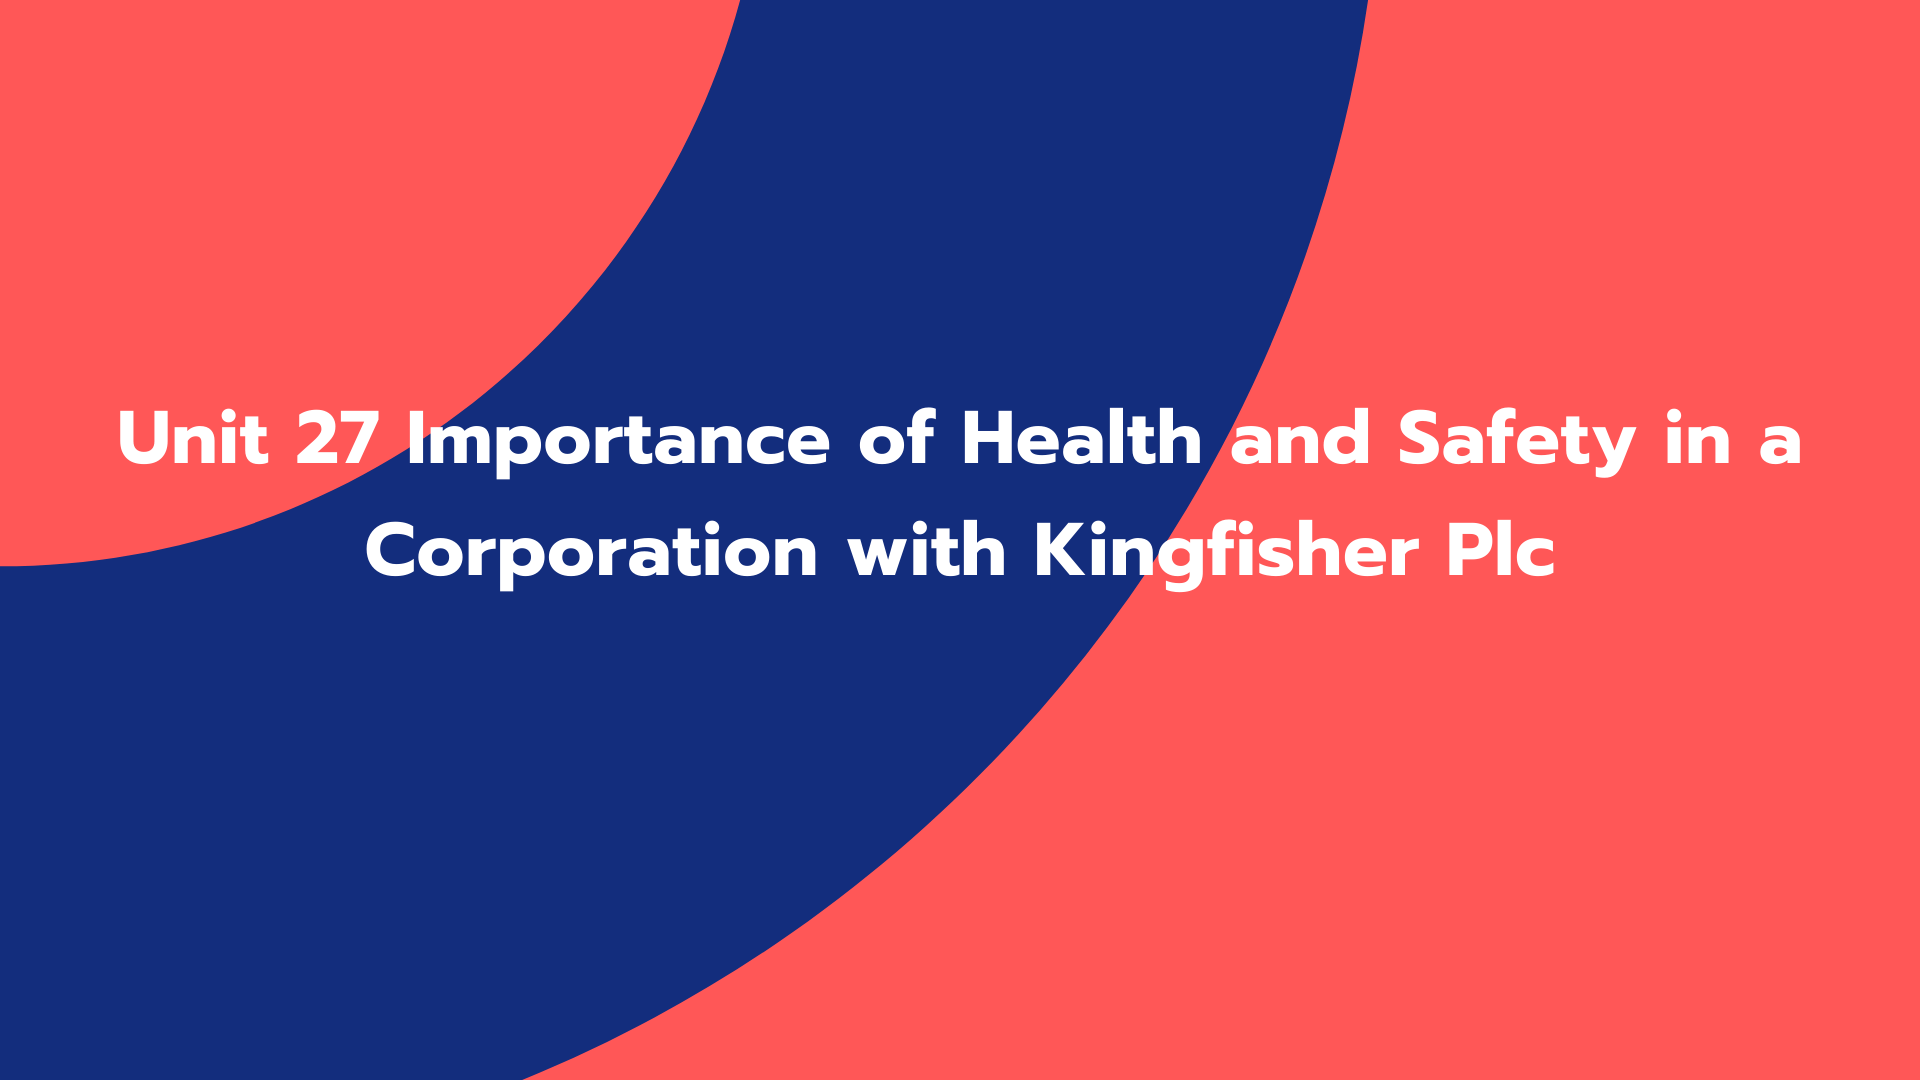 Unit 27 Importance of Health and Safety in a Corporation with Kingfisher Plc